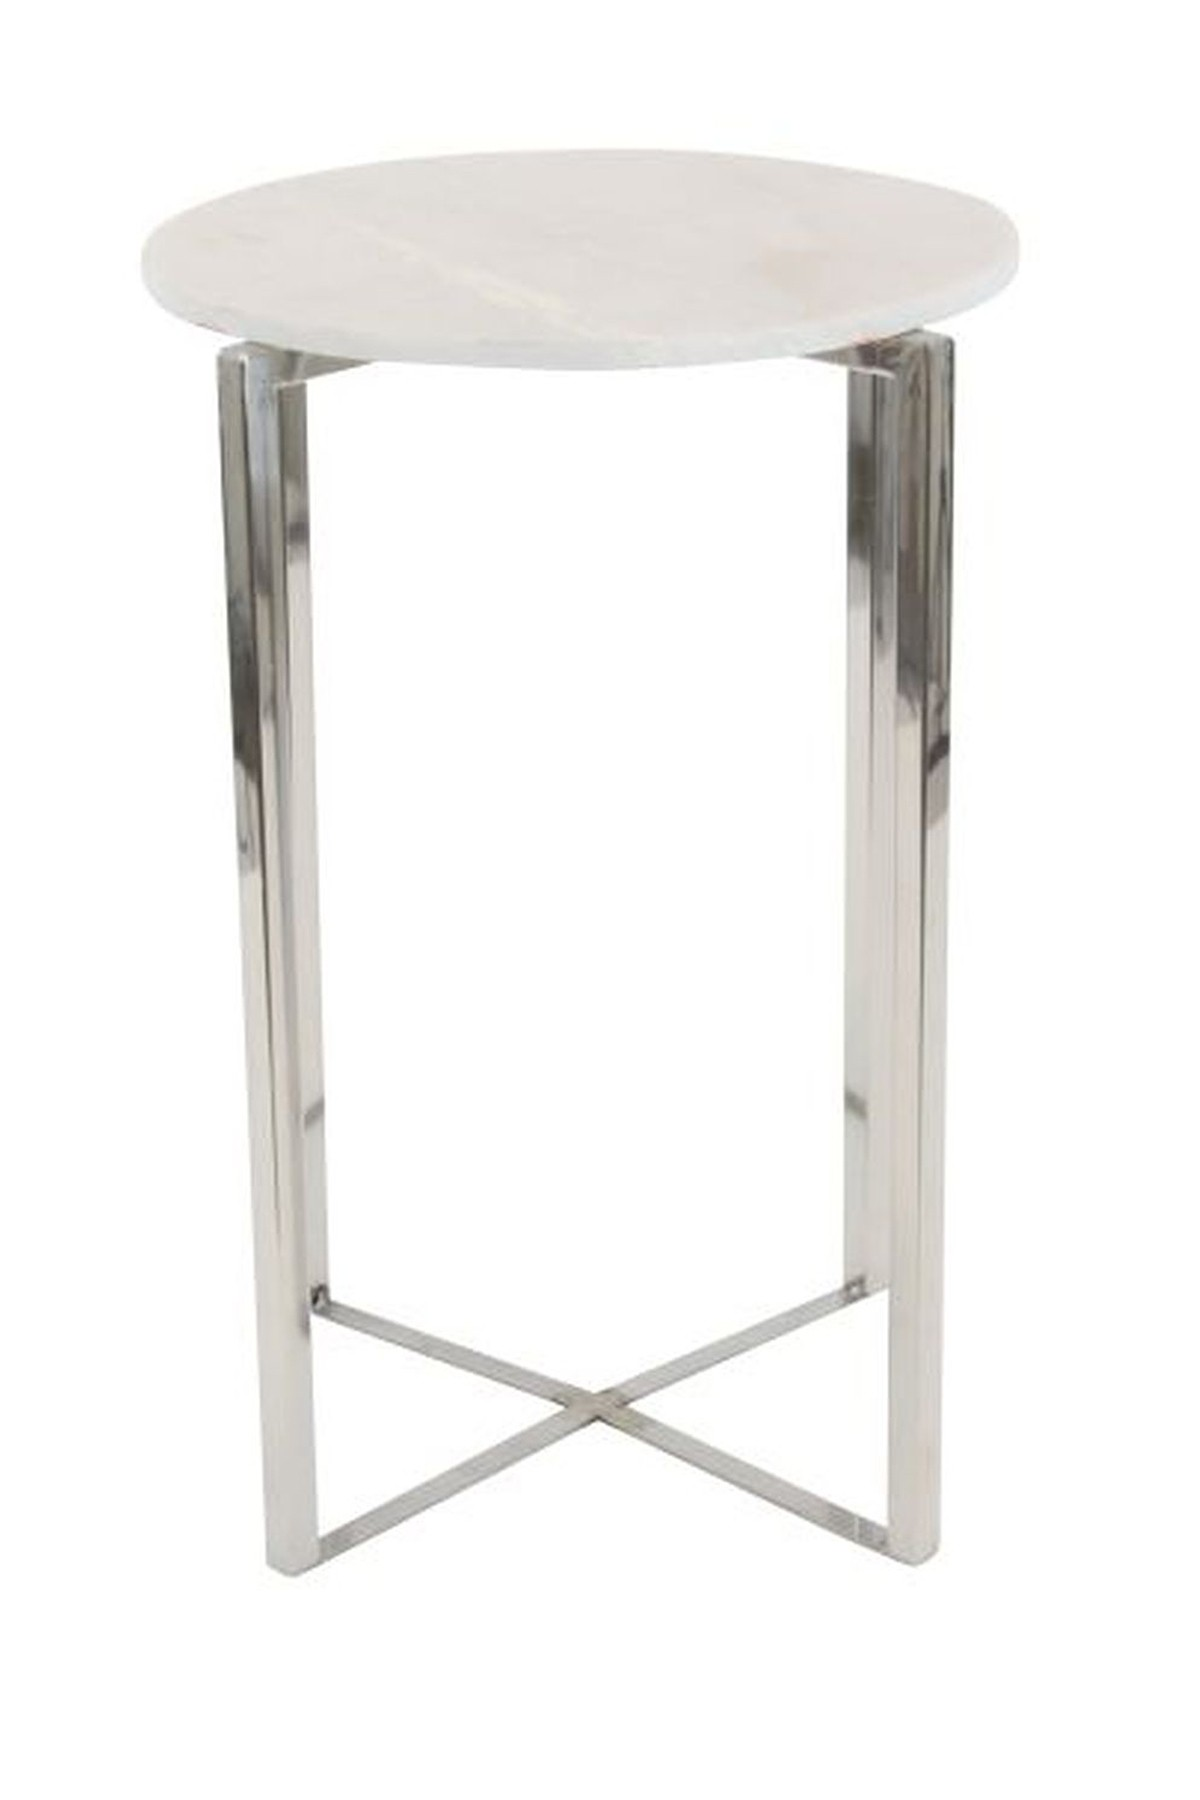 uma white silver stainless steel marble accent table nordstrom rack threshold gold side contemporary coffee tables toronto tiffany lily lamp dark farmhouse small wicker chair red